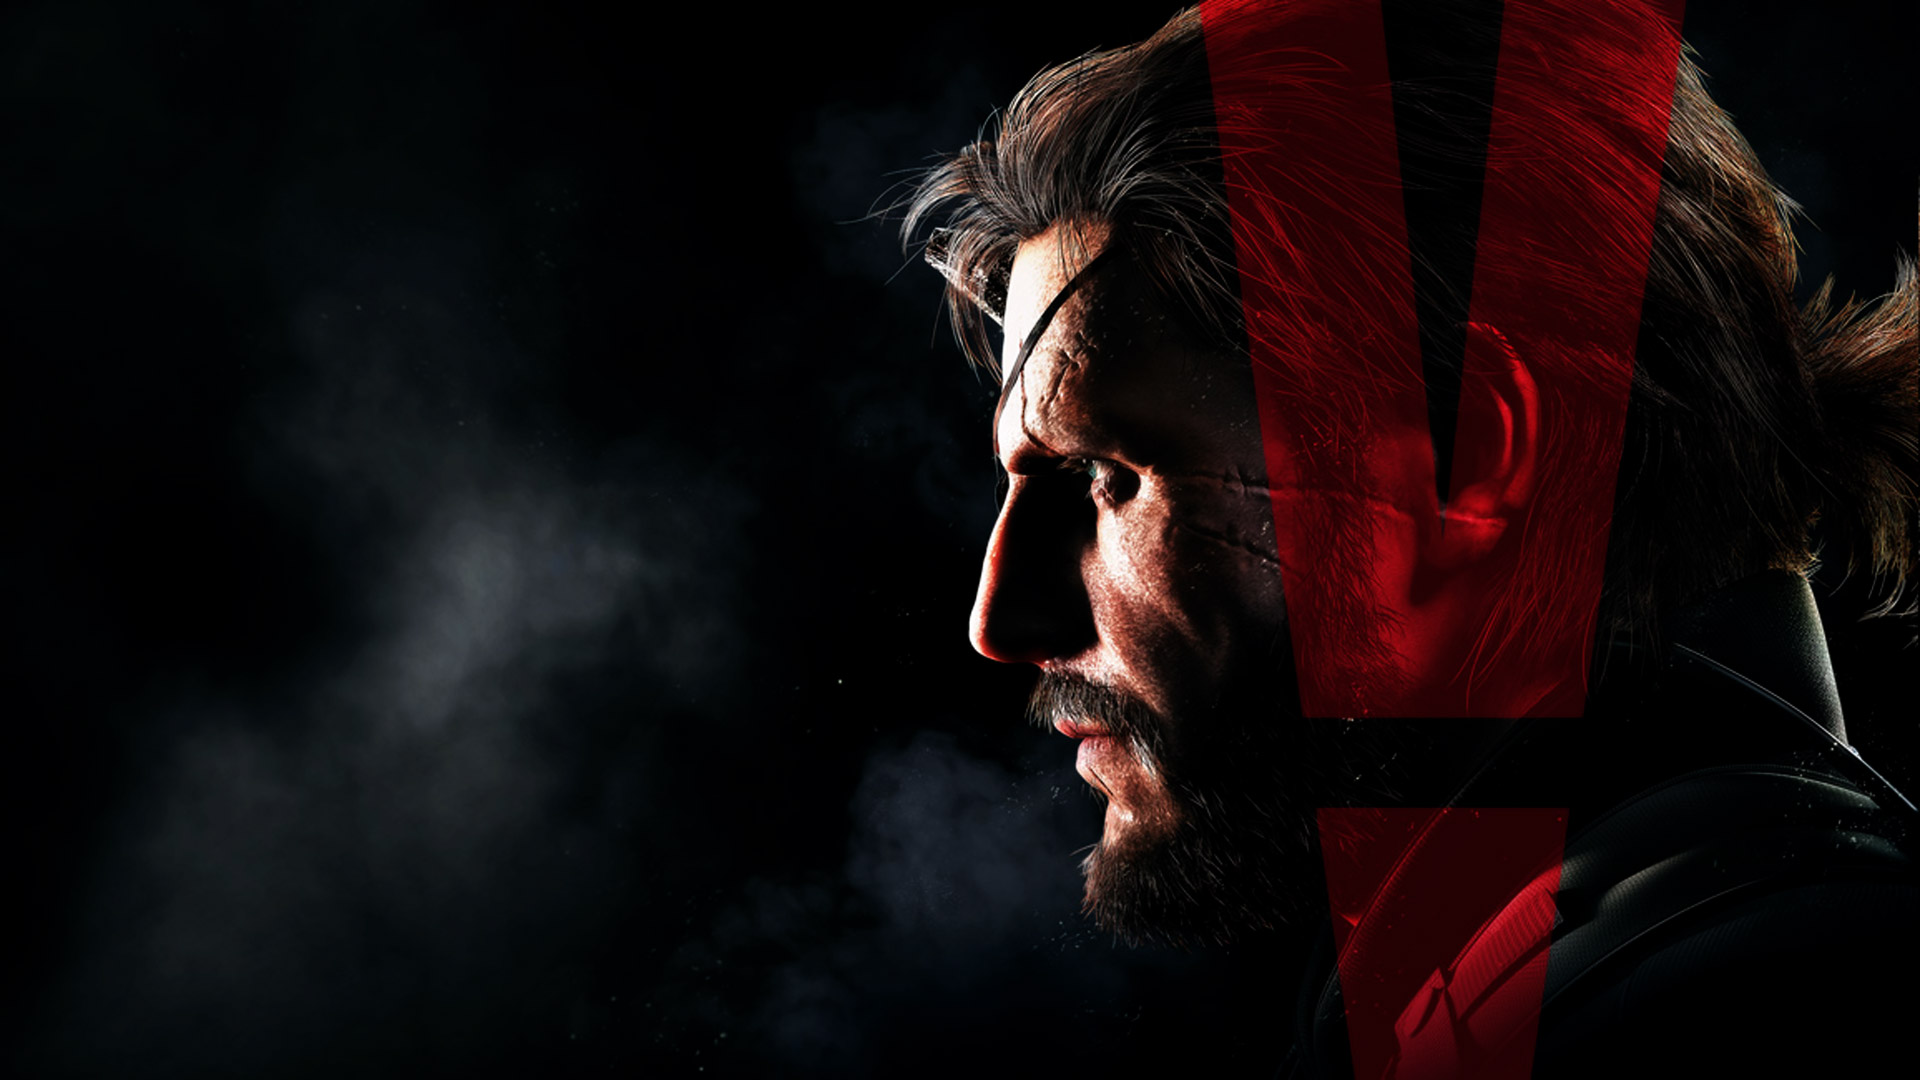 Metal Gear Solid 5 The Phantom Pain Wallpapers Pictures